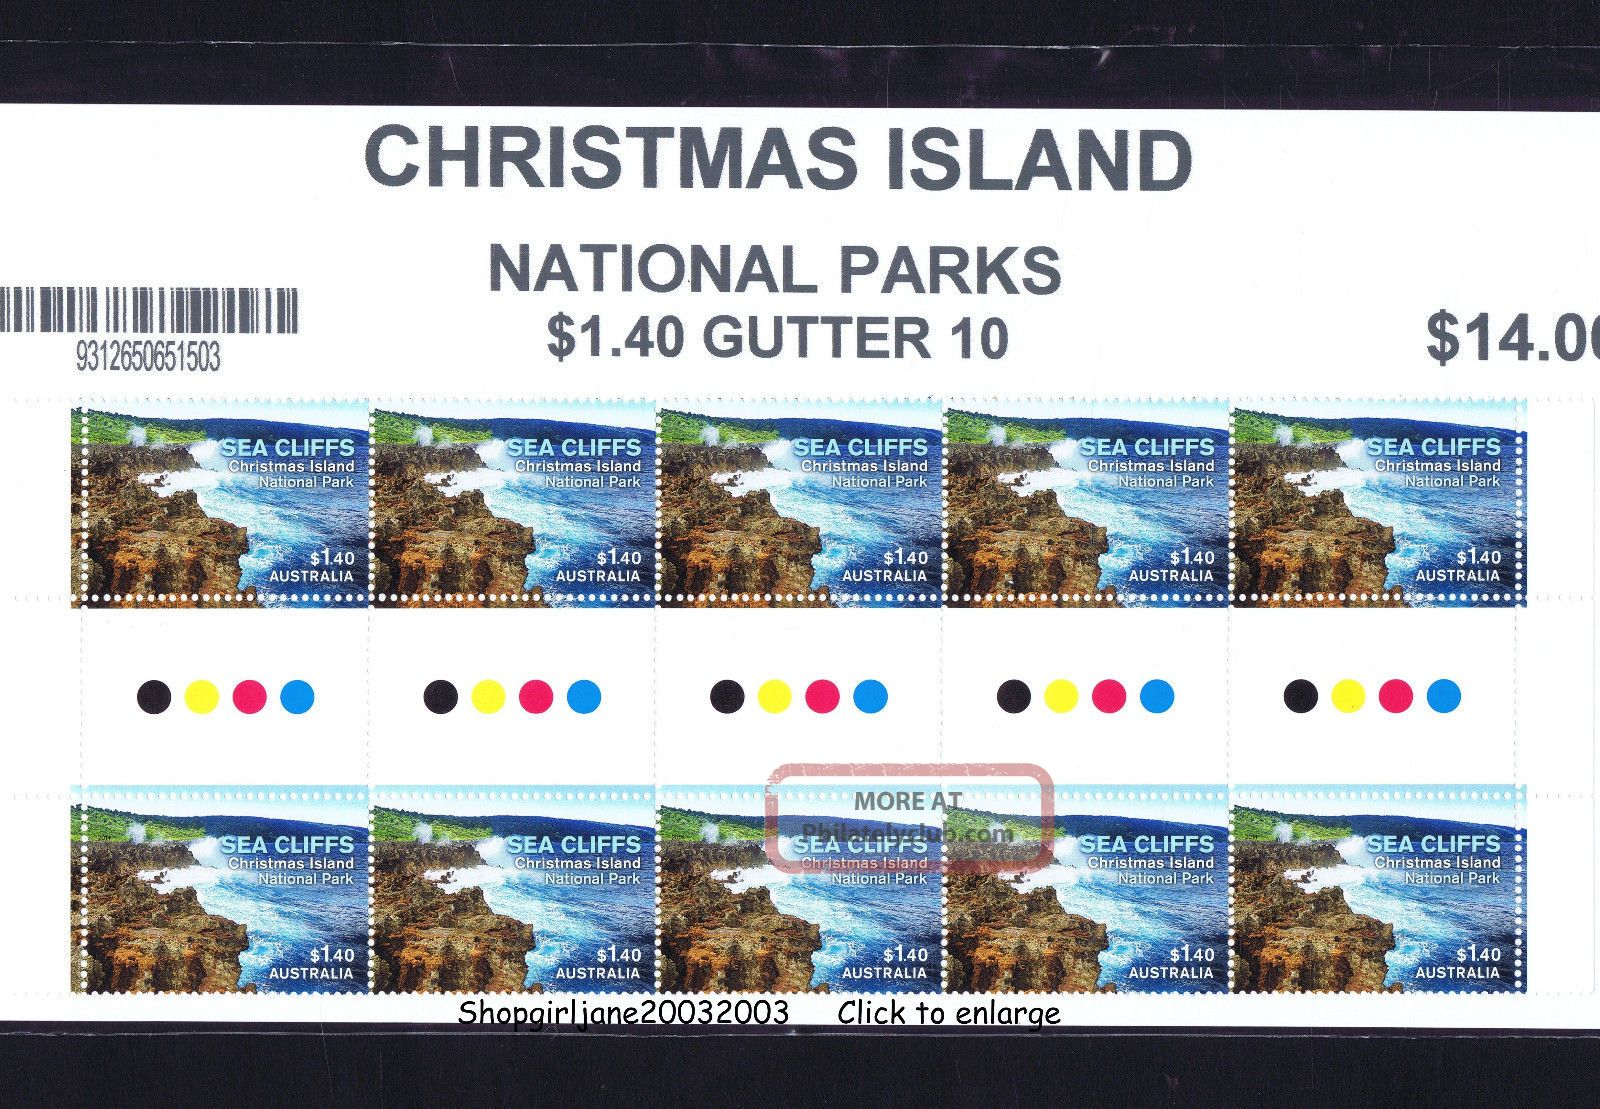 2014 ❧ Australia ❧ Christmas Island ❧ National Parks ❧ $1.  40 Gutter Strip Of 10❧ States & Territories photo